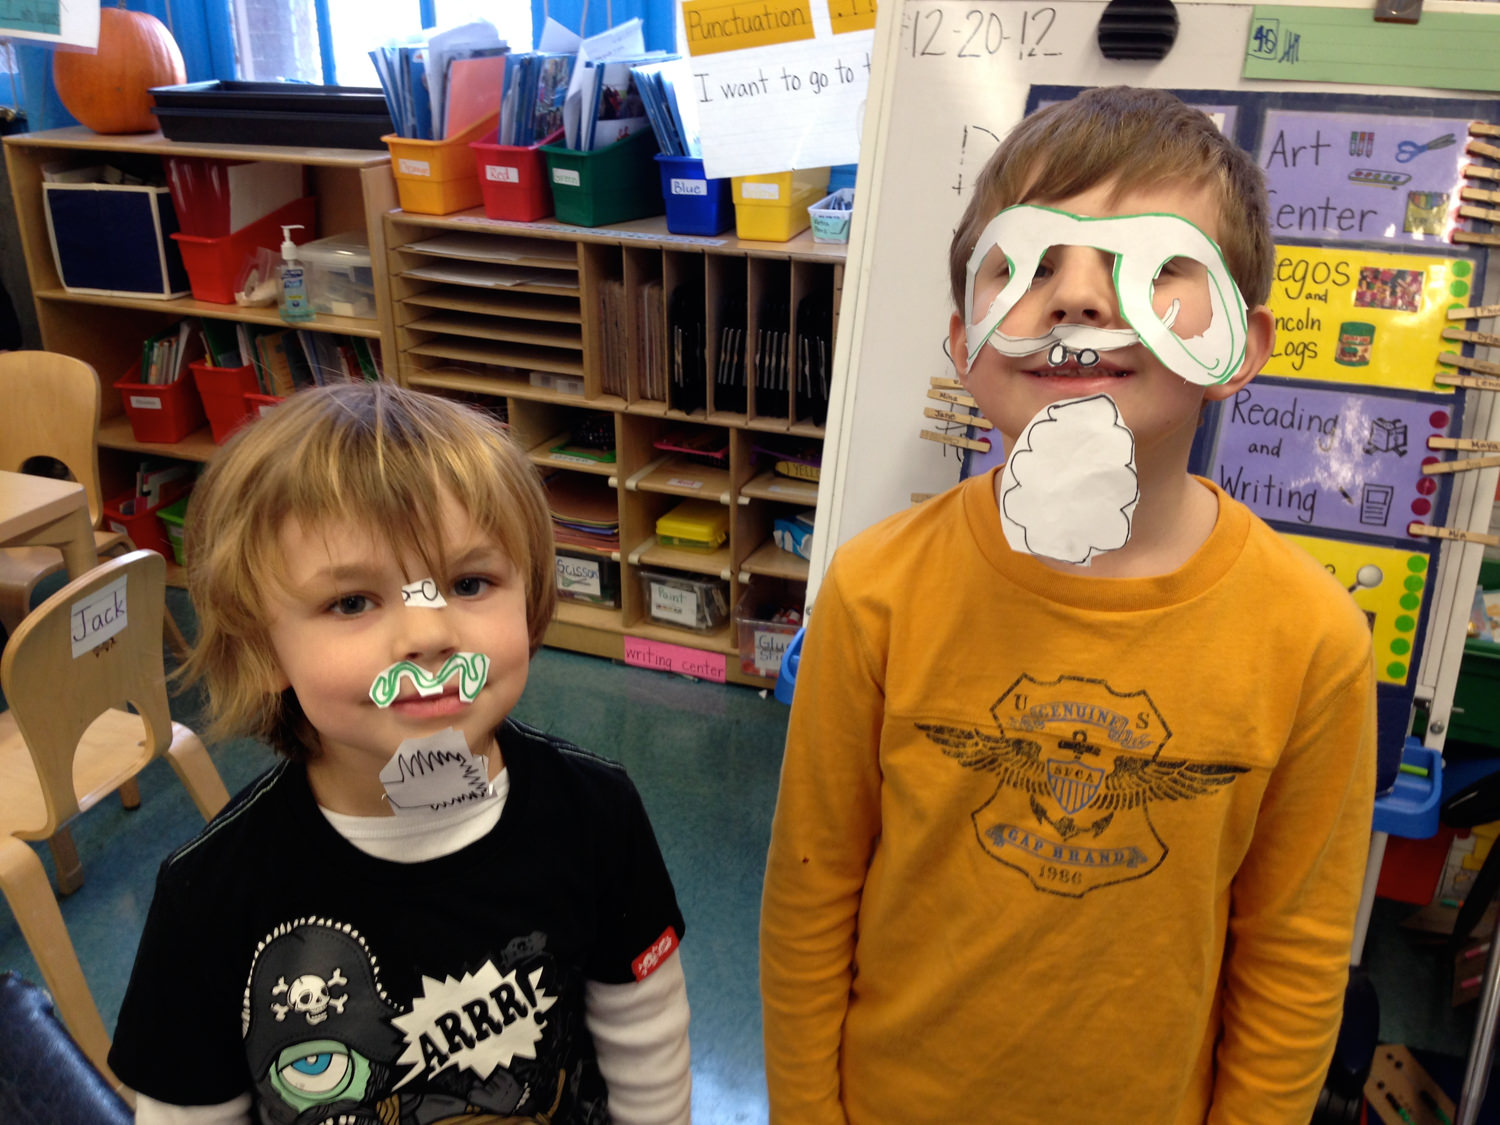 I was an elementary teacher for five years. I've always found kids to be absolutely hilarious. It was always hard for me to put on a stern face when they were misbehaving in a funny way. So sometimes I just let things go, like the month they started gluing mustaches to their face during playtime. That's a really creative way to use the art center!